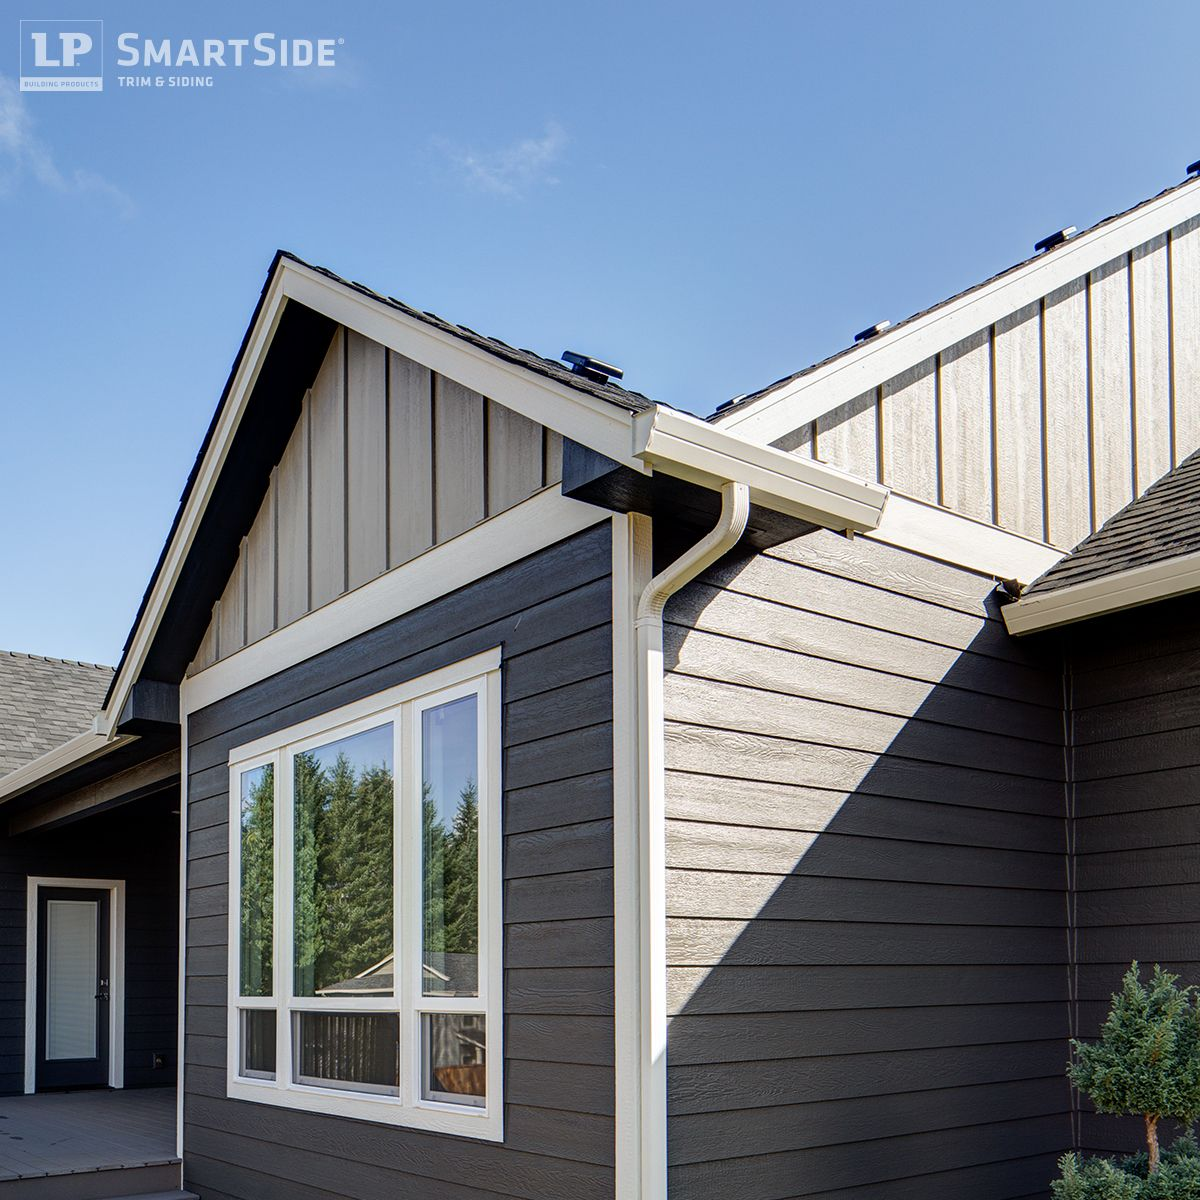 Lp smartside panel siding comes in a variety of options Engineered wood siding colors